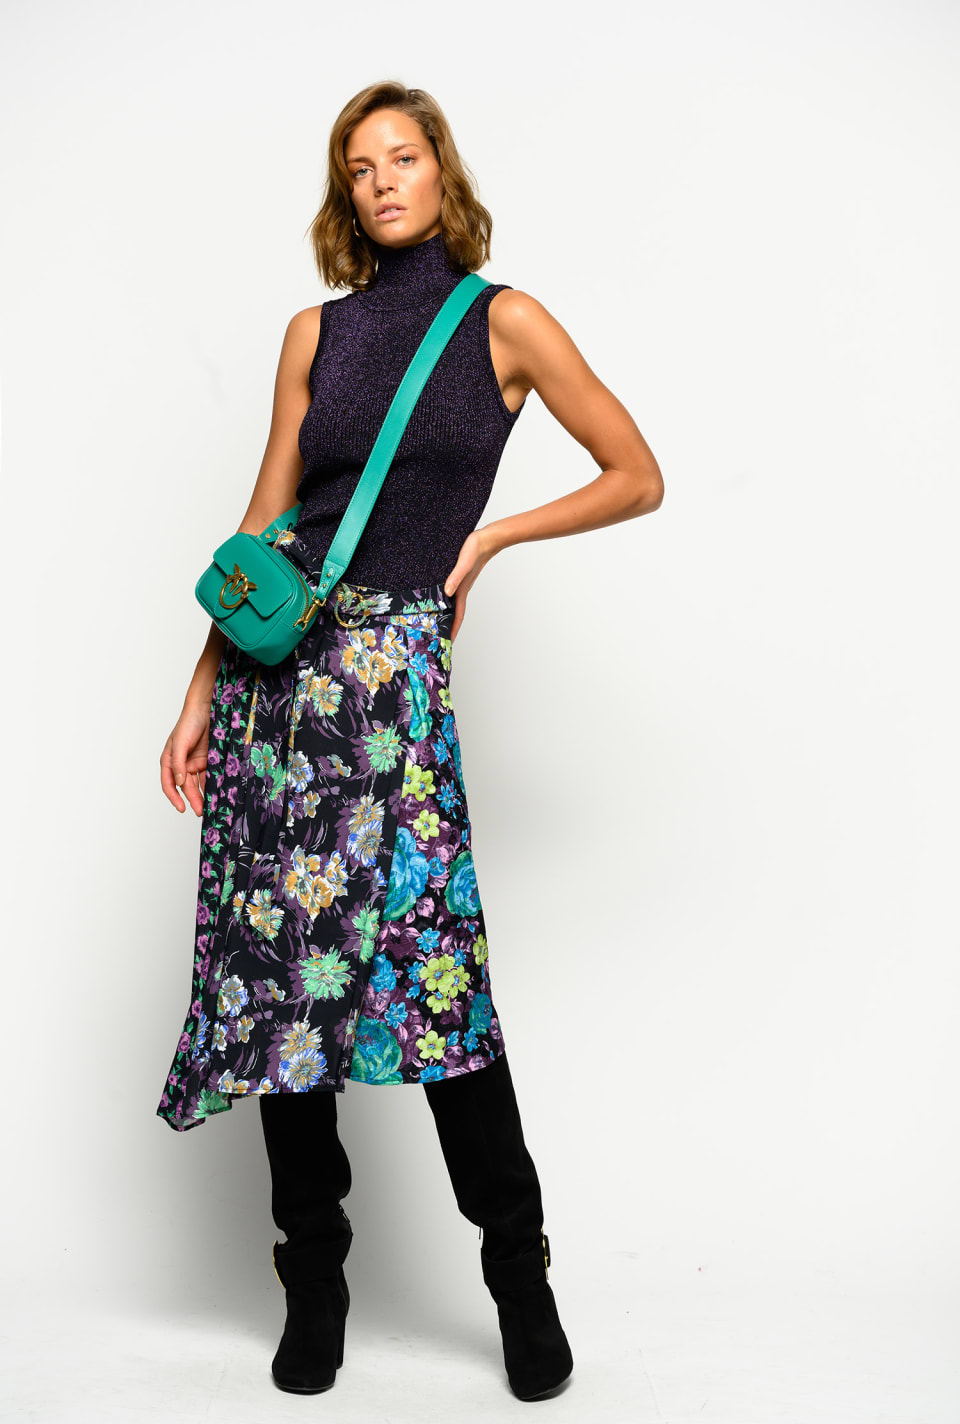 Gonna patch di fiori - Pinko